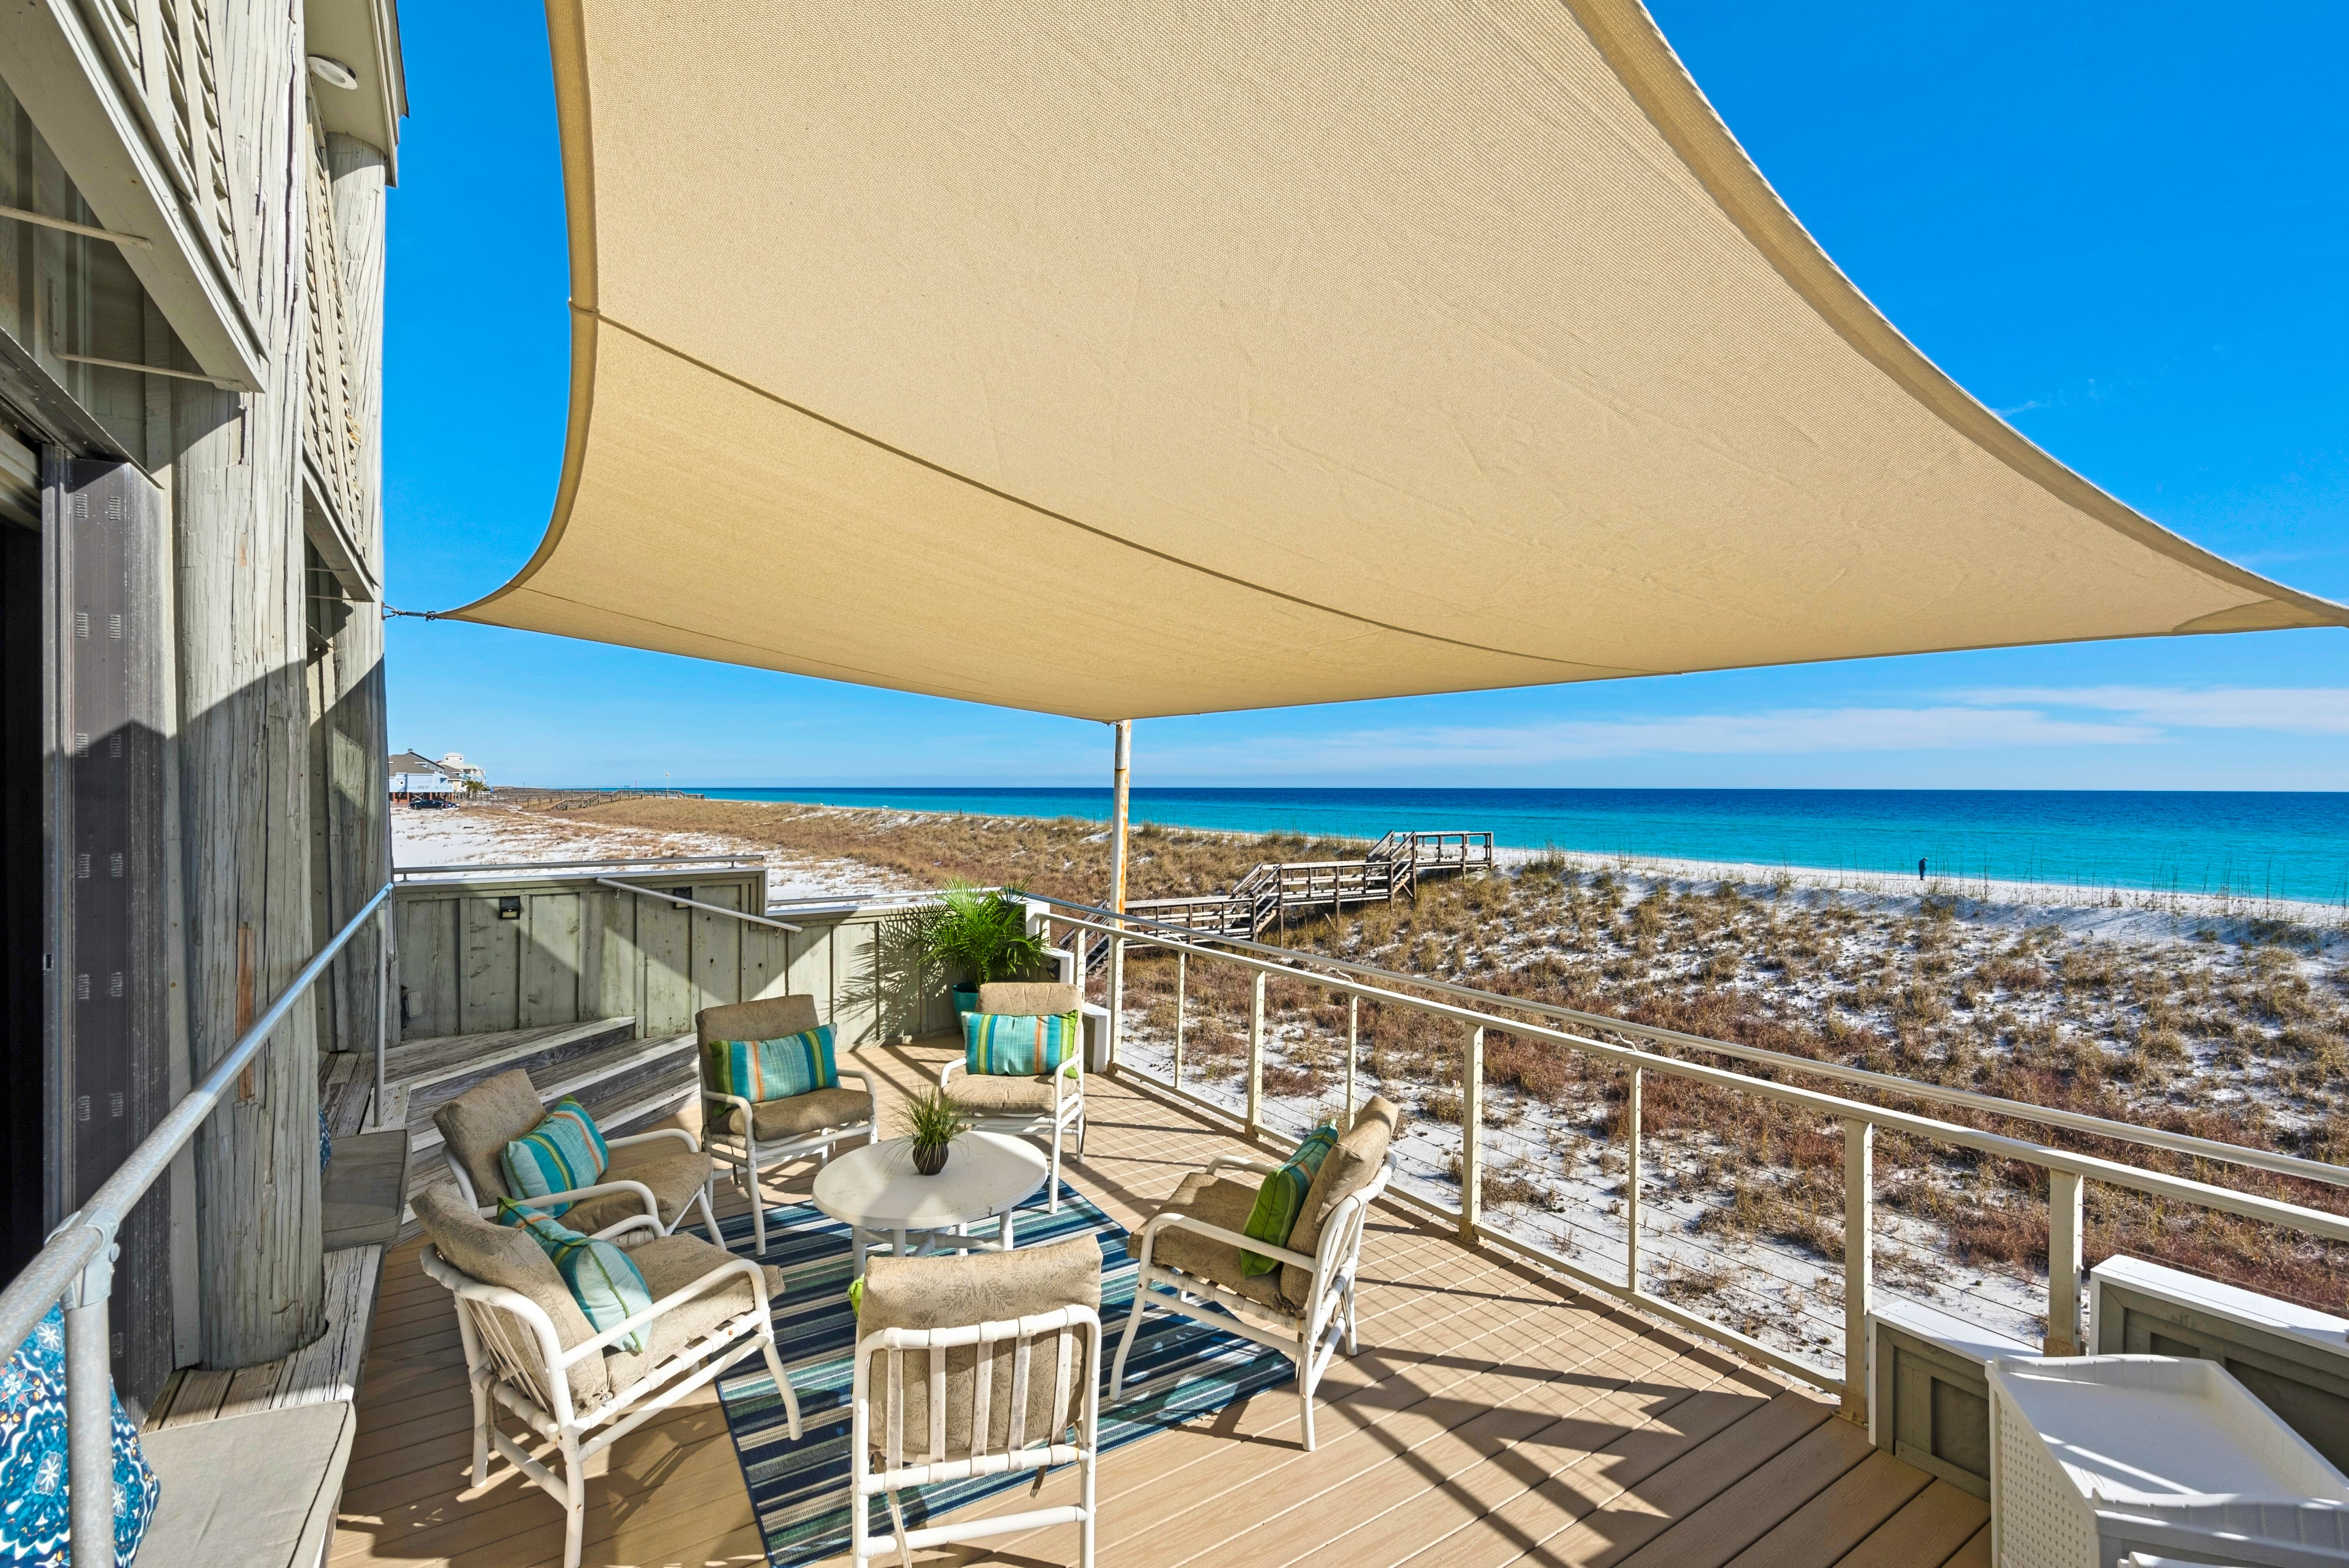 7527 Gulf Blvd - The Oyster House/Cottage rental in Navarre Beach House Rentals in Navarre Florida - #60